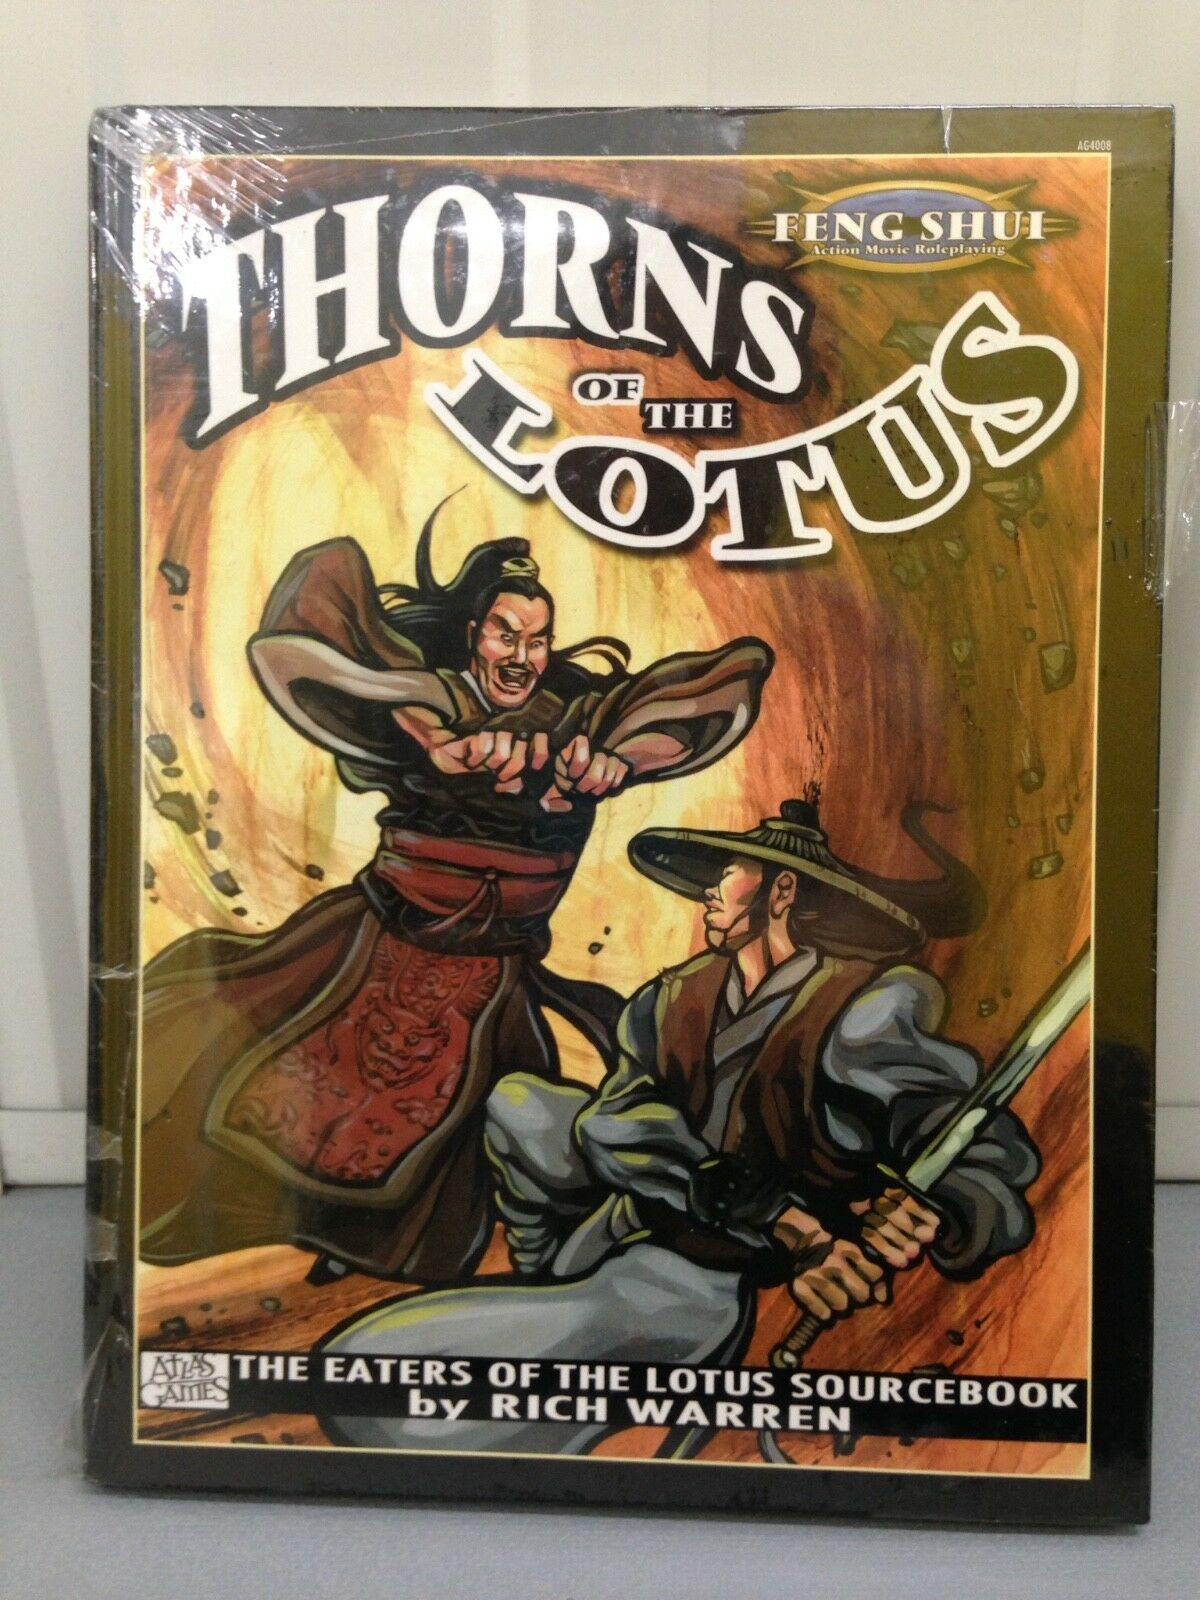 Thorns of the Lotus Atlas Games Feng Shui Action Movie Roleplaying plus bonus